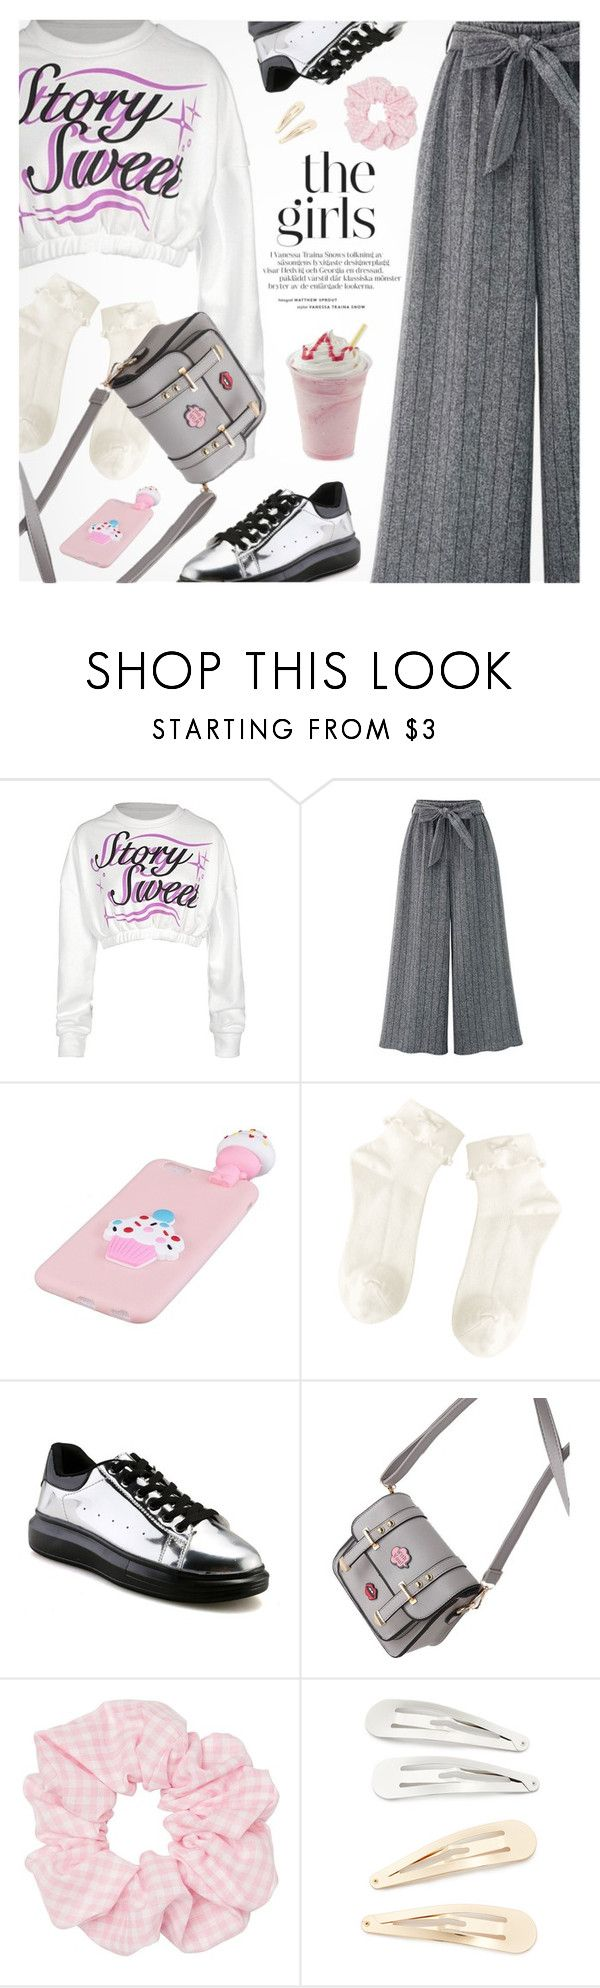 """""""Street Style"""" by pokadoll ❤ liked on Polyvore featuring Kitsch"""